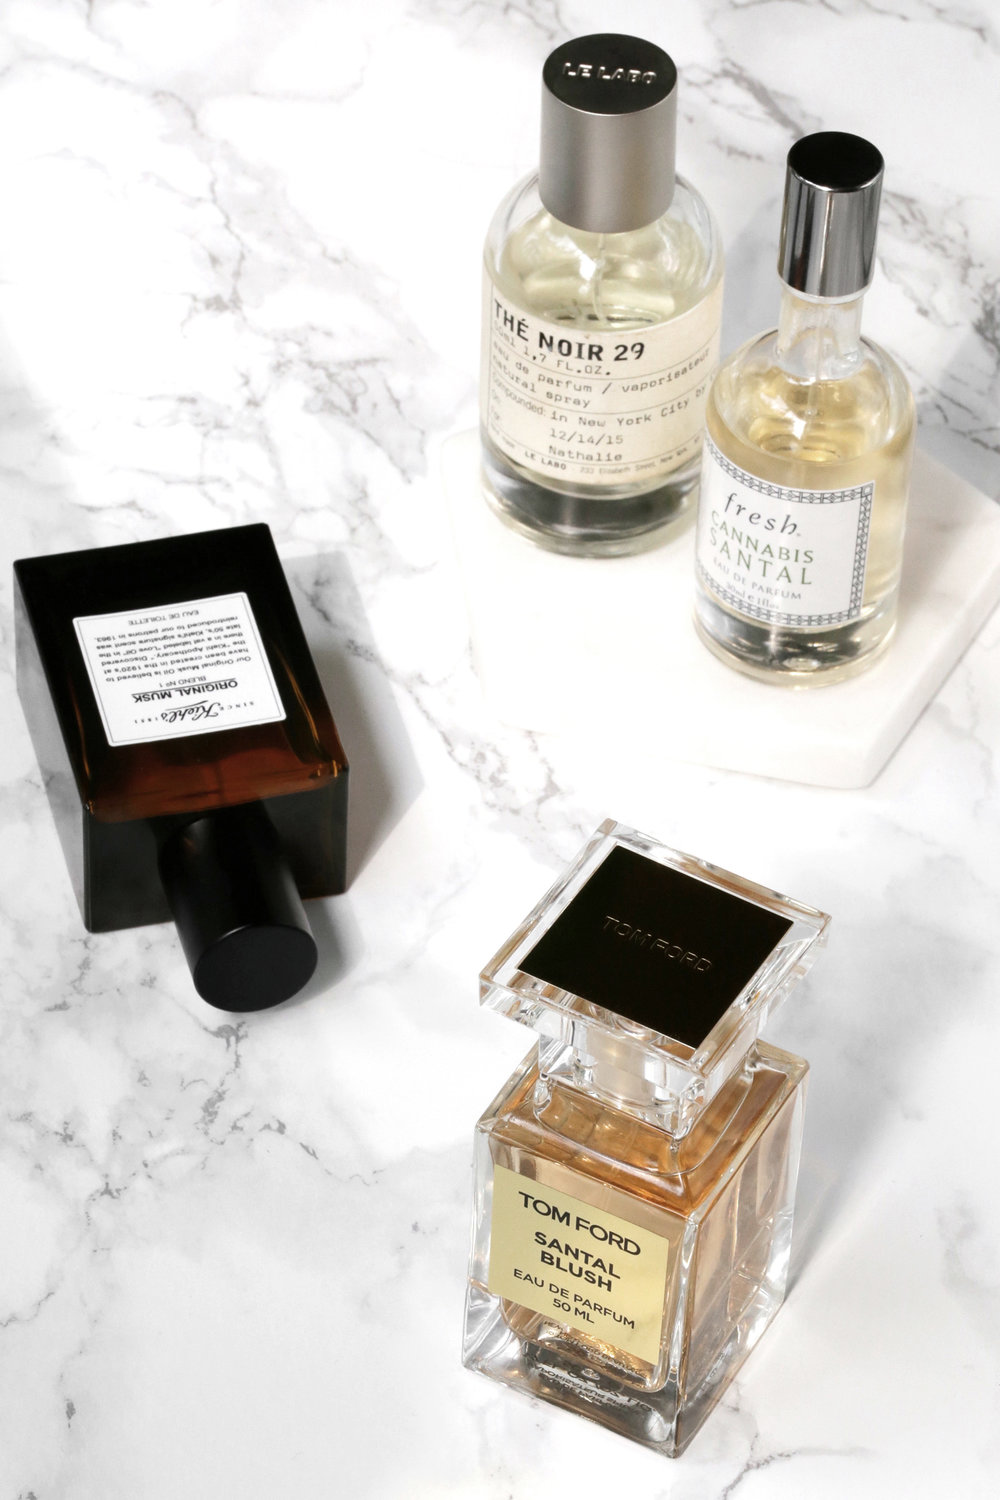 4 Beautiful & Unique Fall Fragrances - Le Labo, Kiehl's, Tom Ford Santal Blush and Fresh Cannabis Santal - WOAHSTYLE.COM_9033.jpg